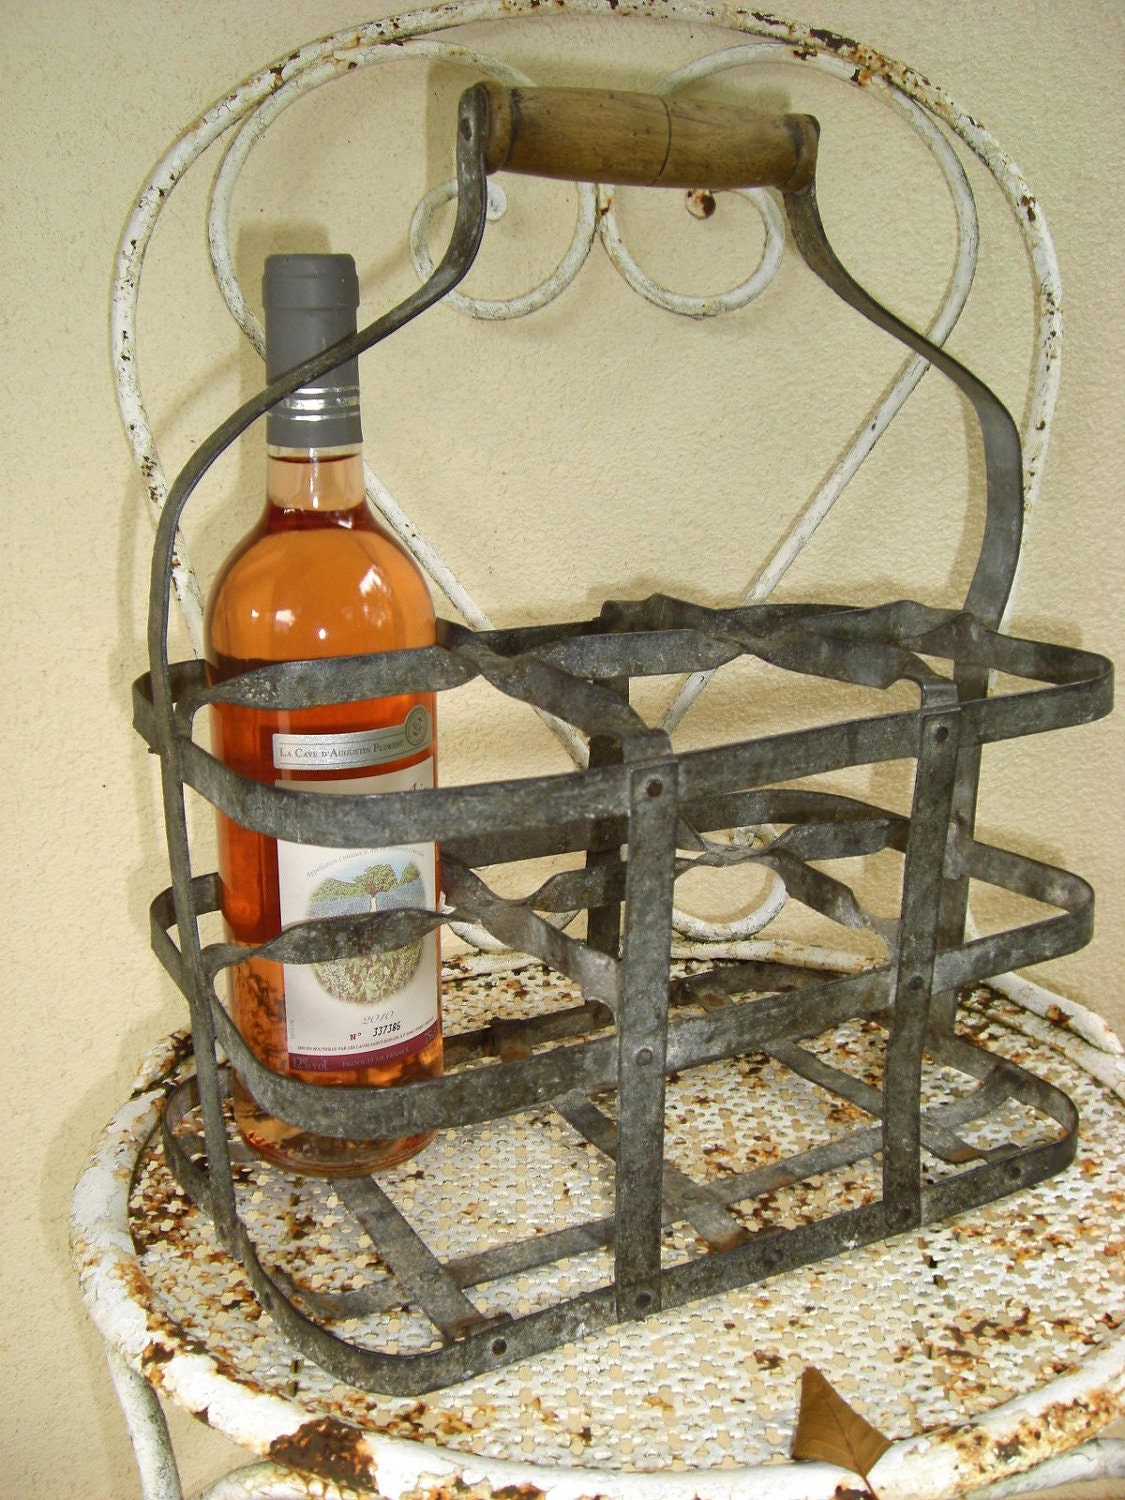 Vintage french metal 6 bottle wine carrier holder rack - Wire wine bottle carrier ...